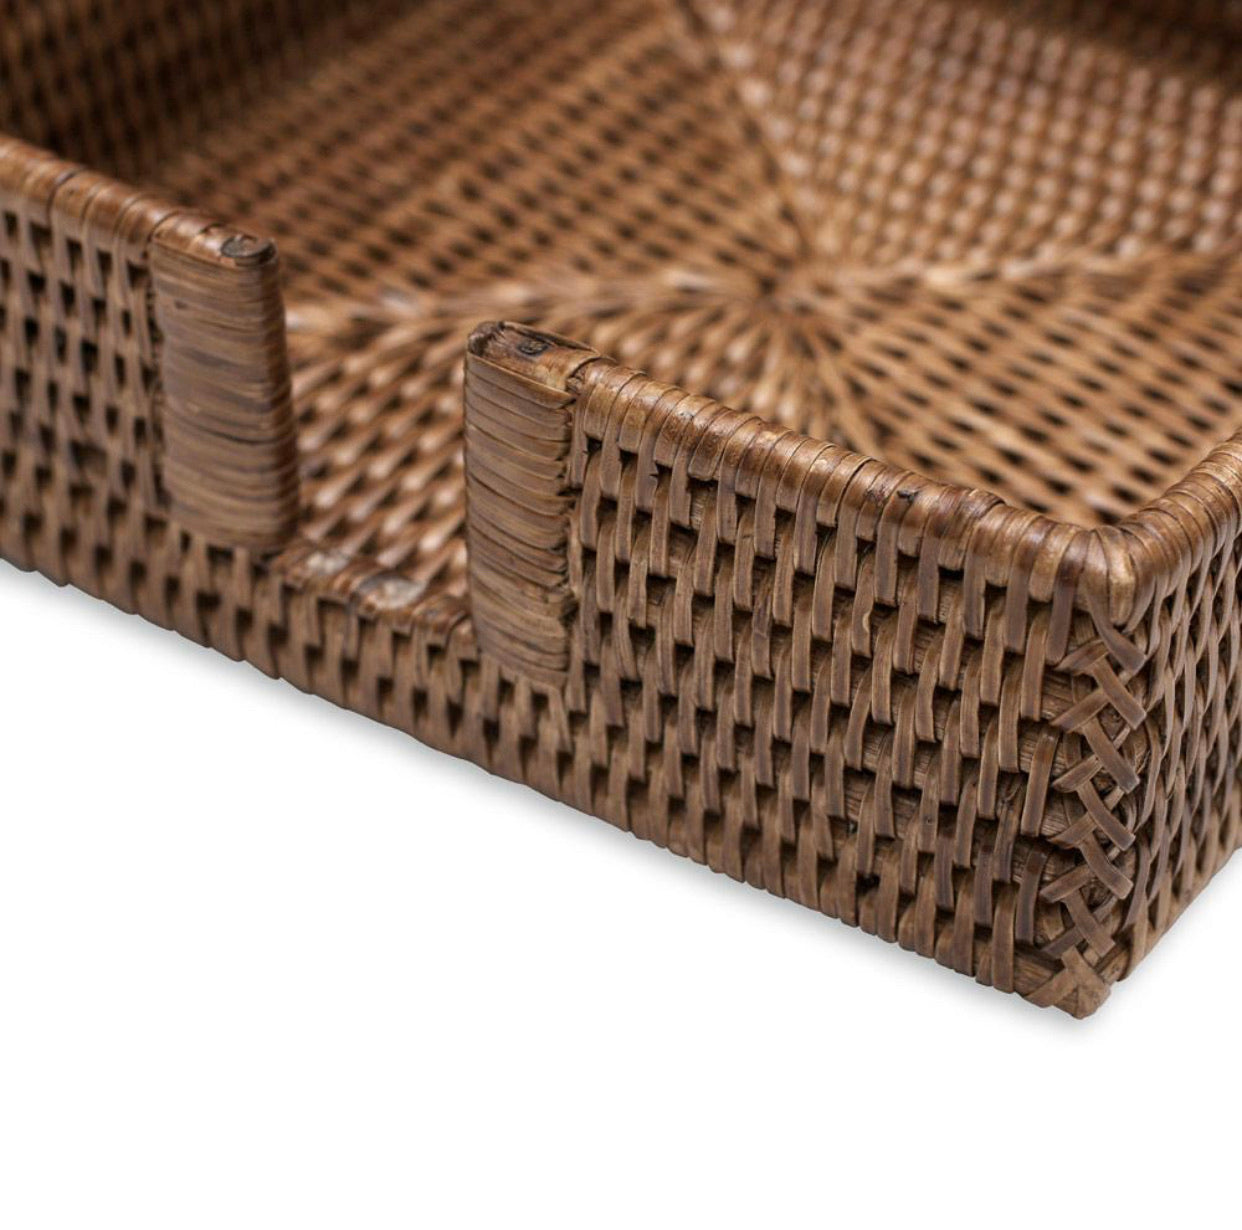 Caspari - Rattan Luncheon Napkin Holder in Dark Natural - 1 Each